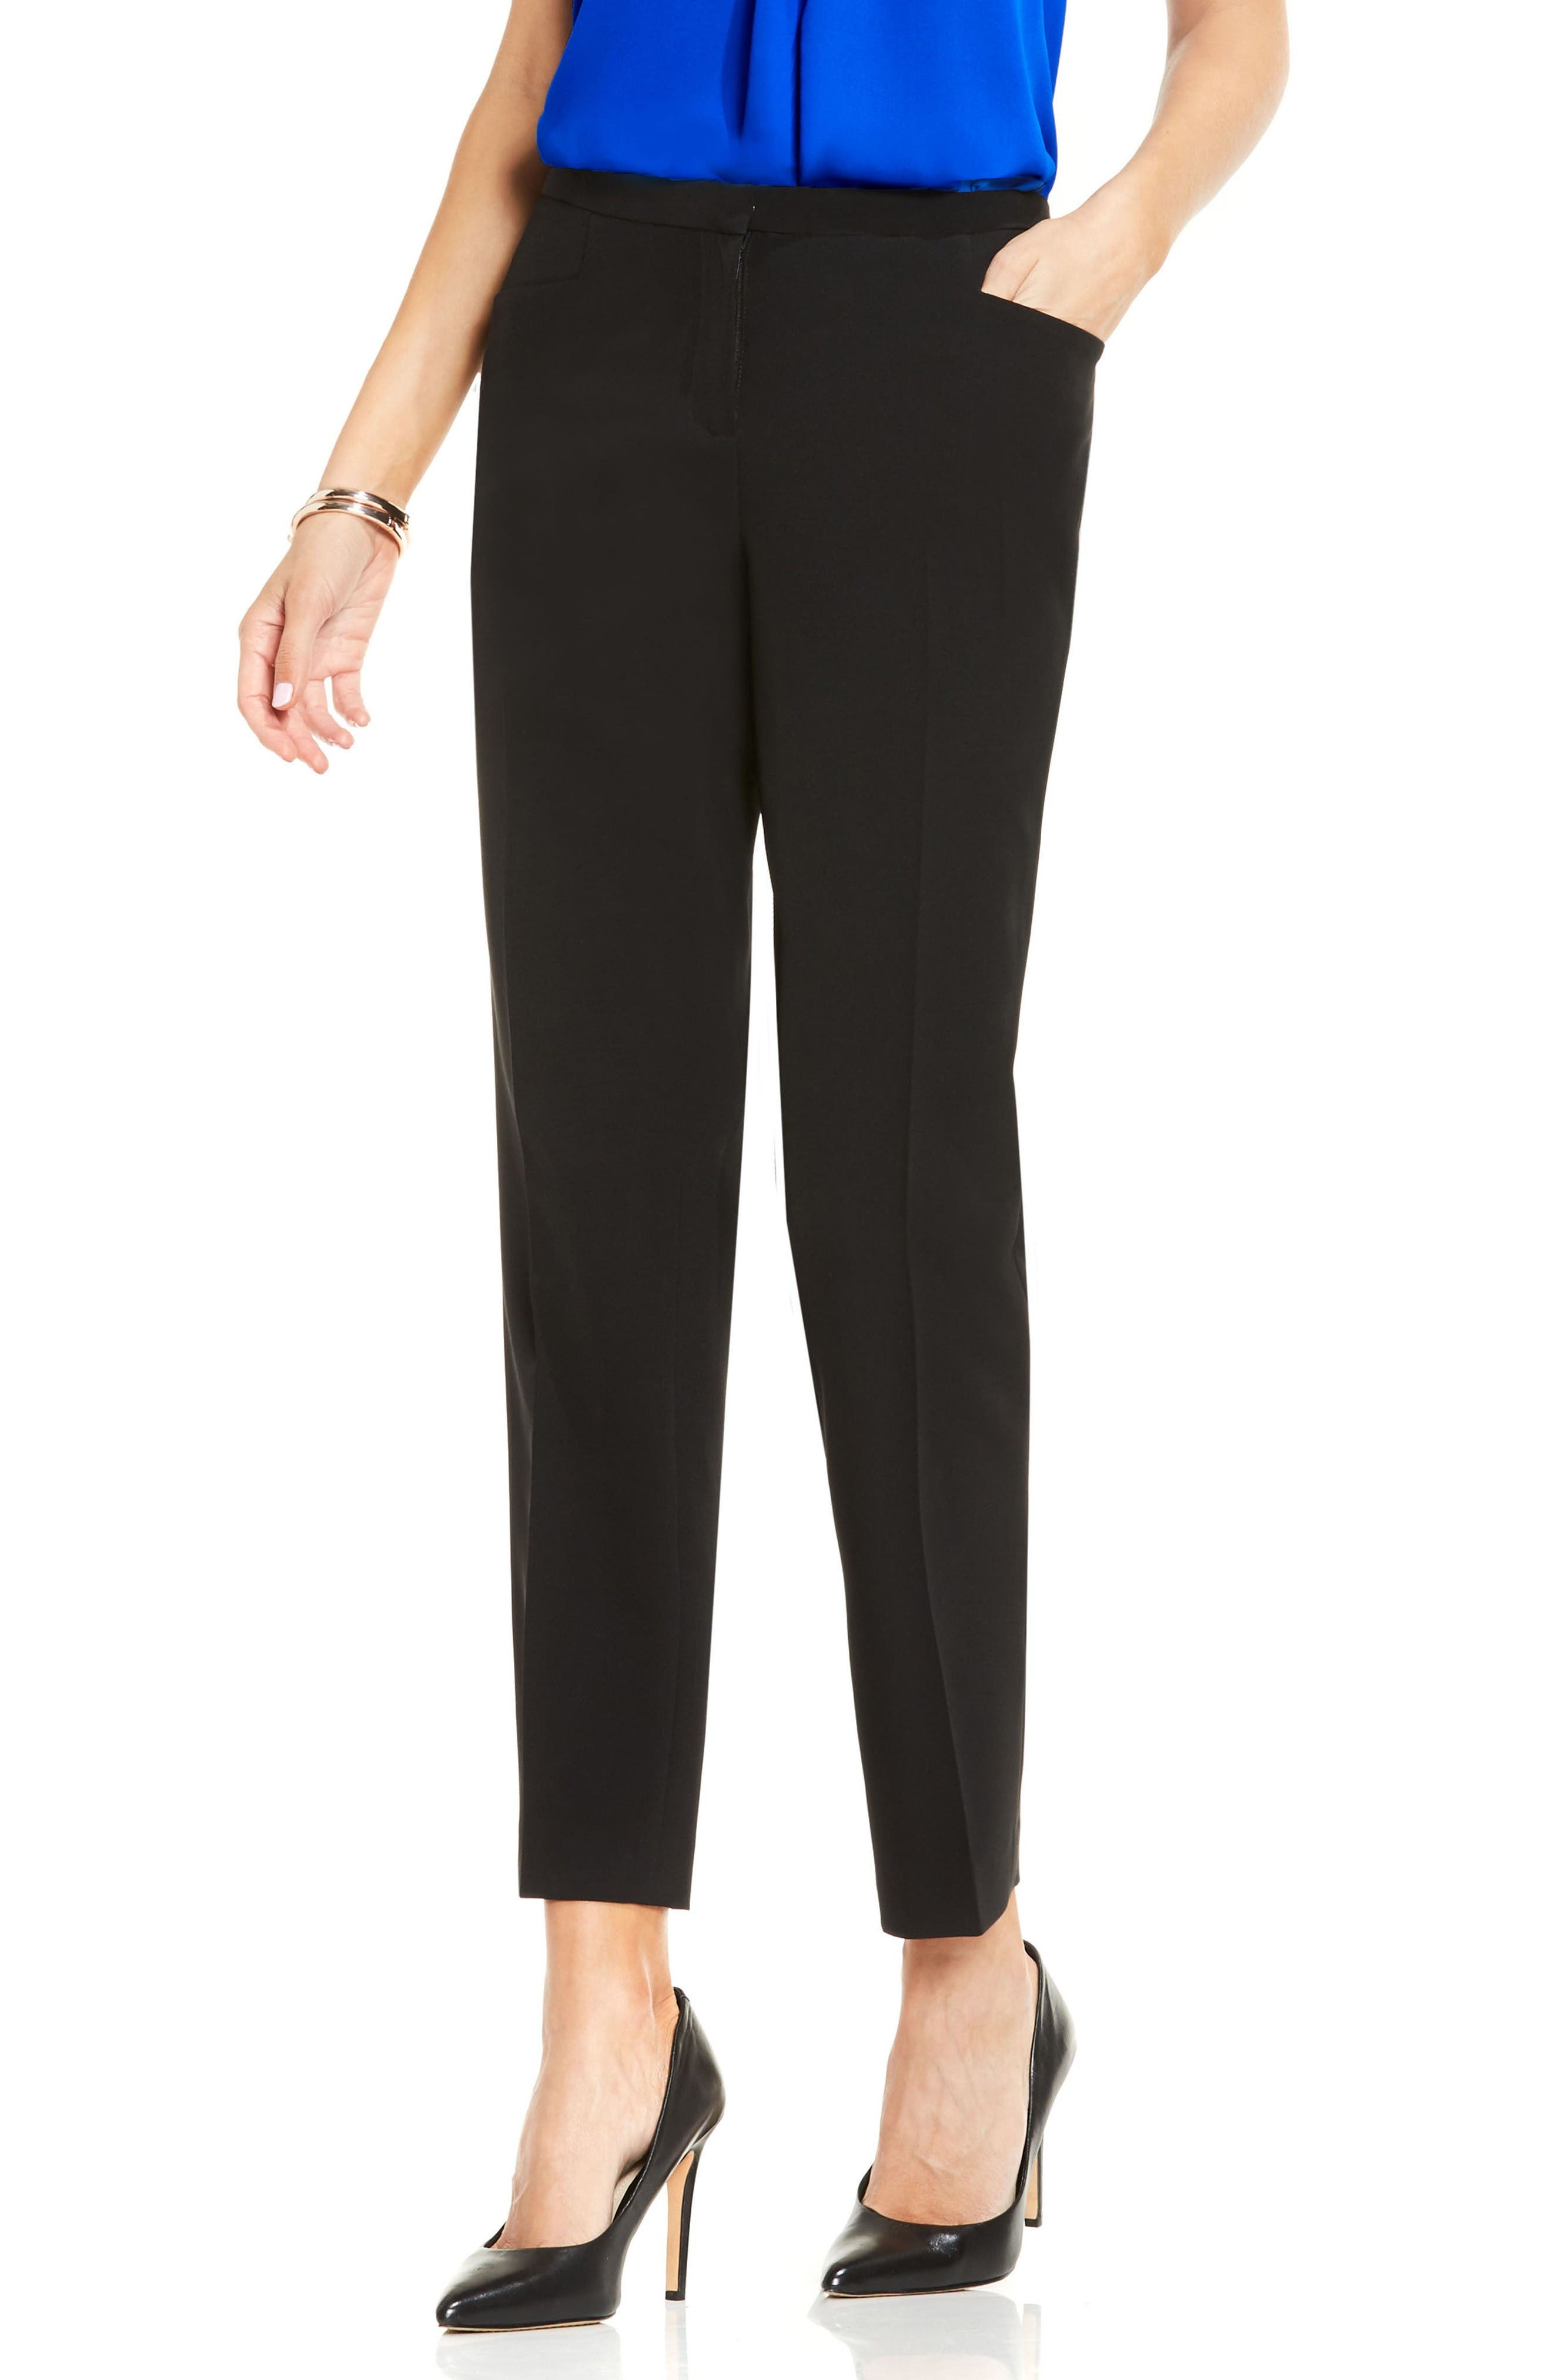 Alternate Image 1 Selected - Vince Camuto Stretch Twill Ankle Pants (Regular & Petite)